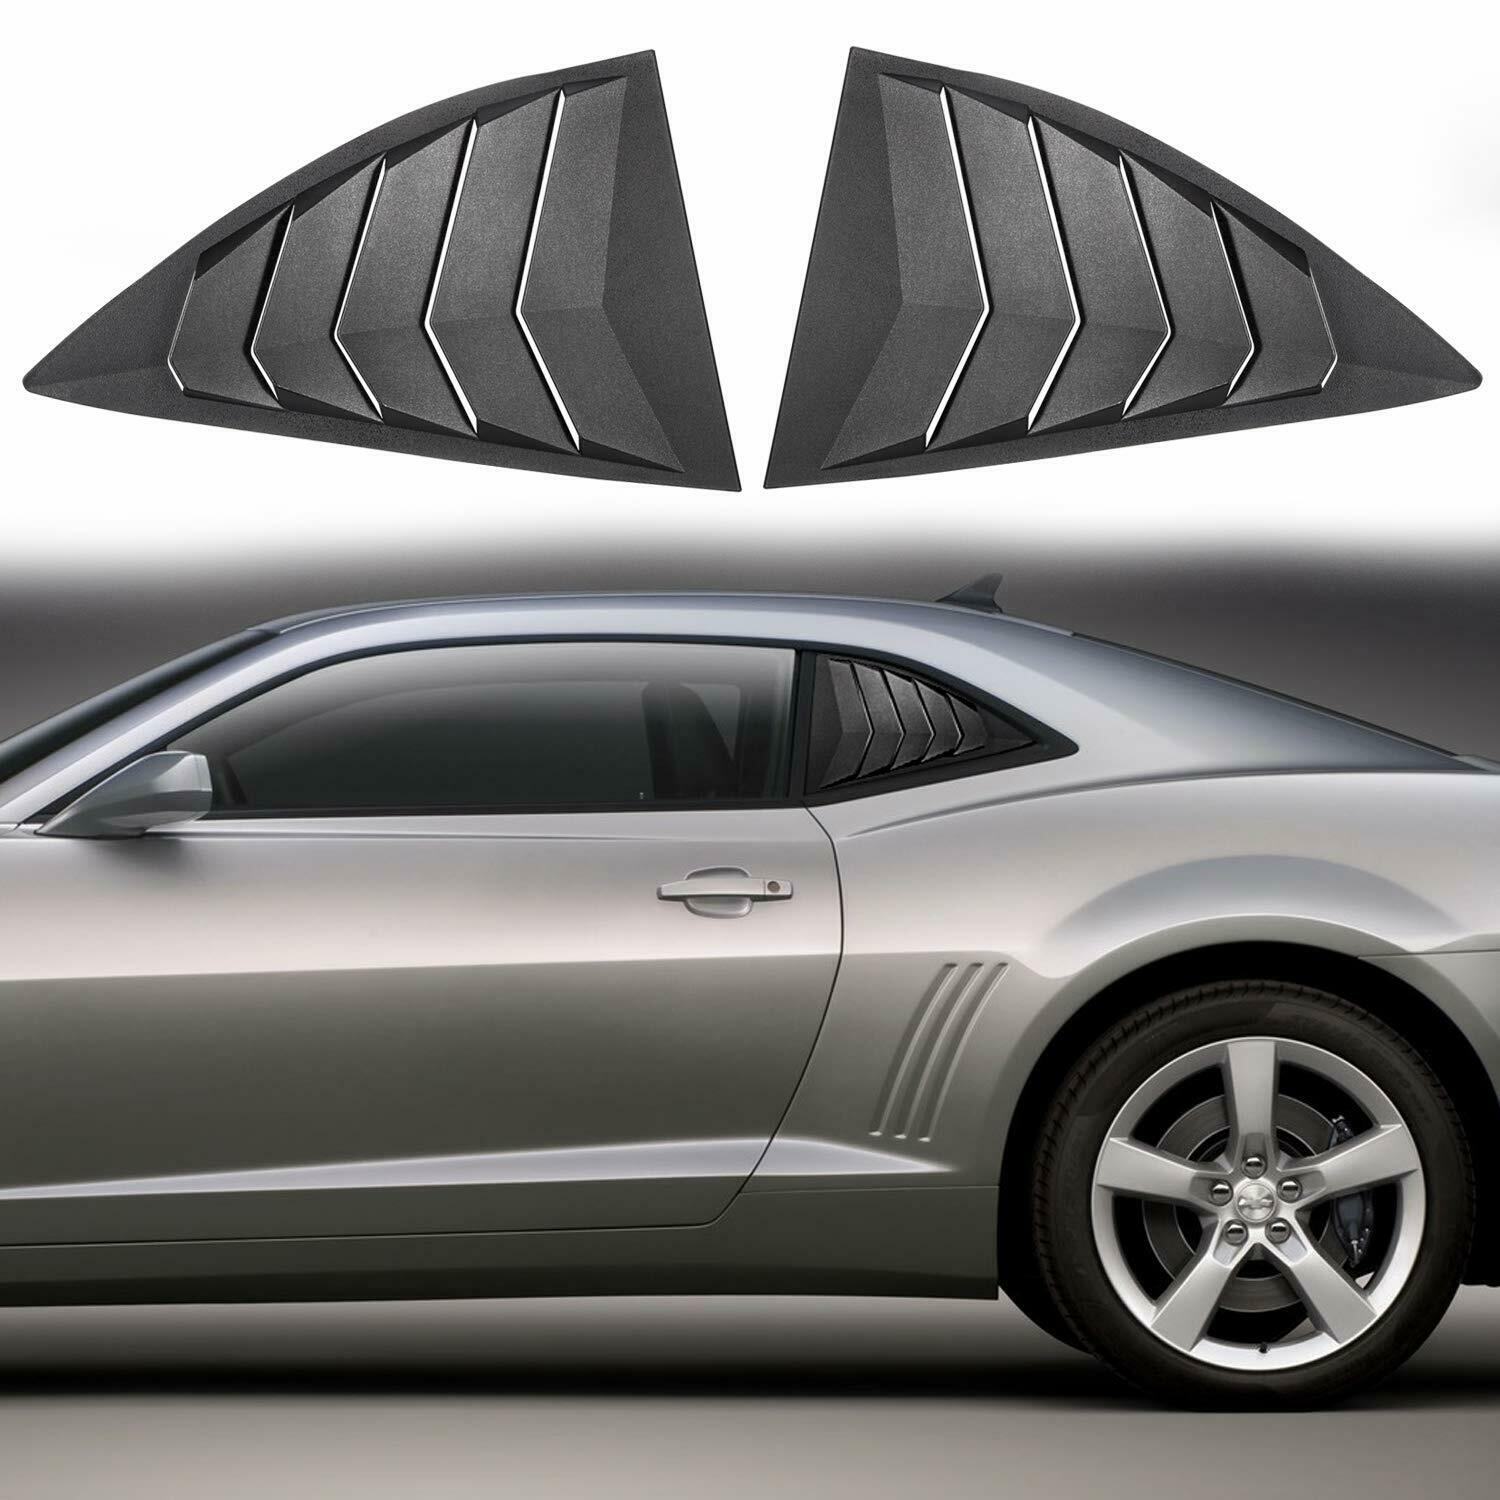 Chuang Qian Side Window Scoop Louvers ABS Window Visor Cover Sun Rain Shade Vent for 2010